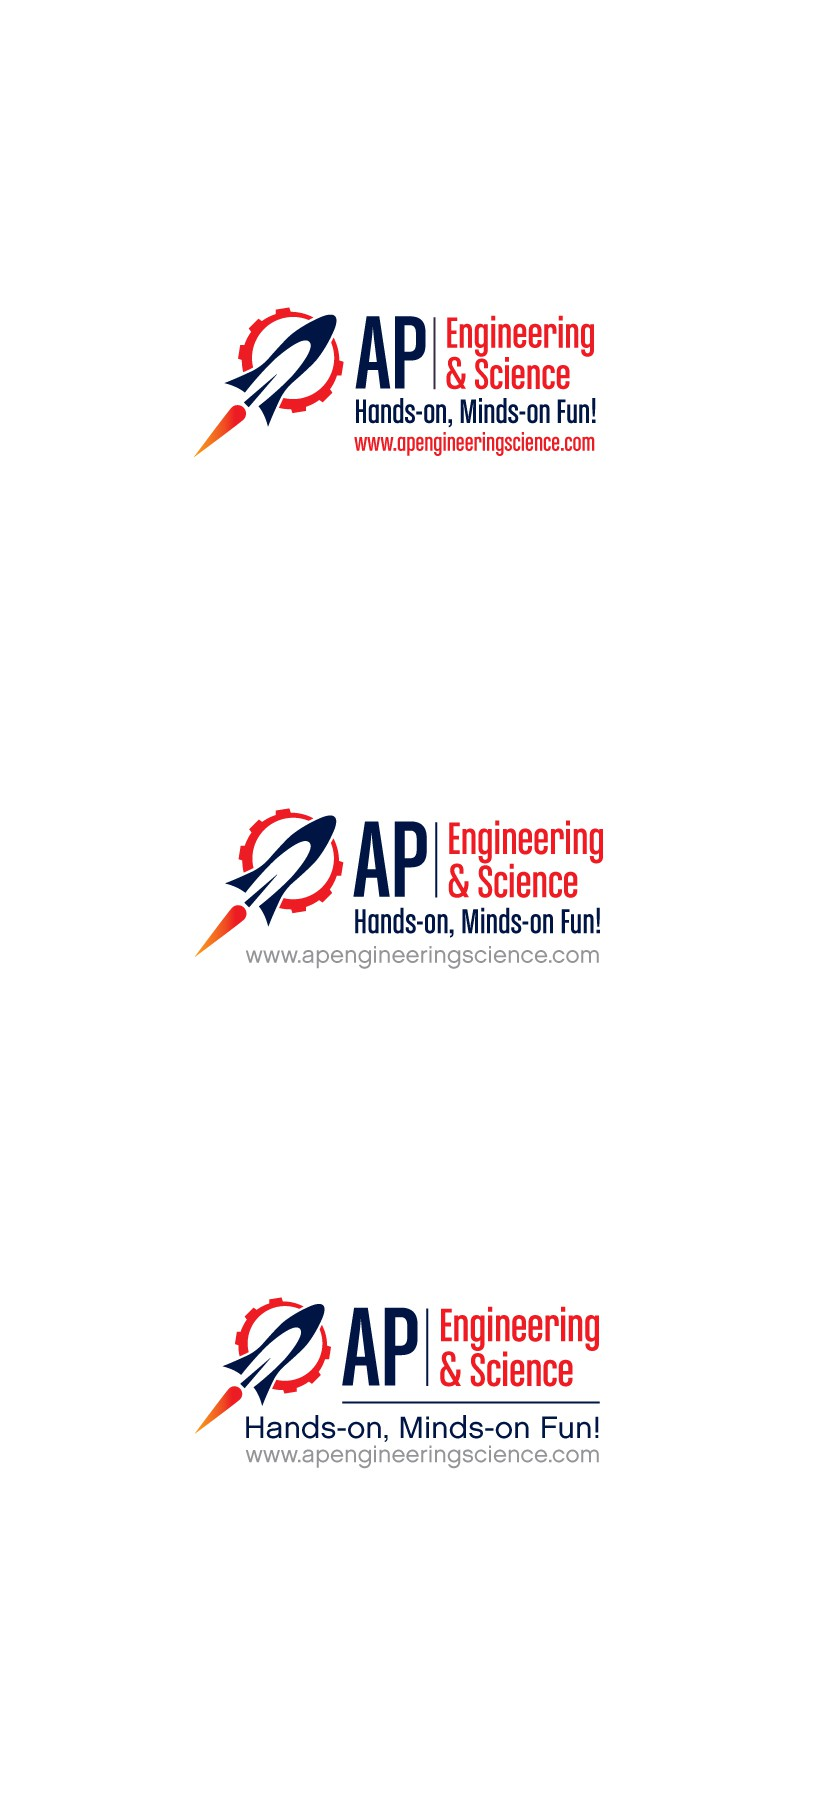 Create FUN and BOLD robotic science logo for AP Engineering and Science